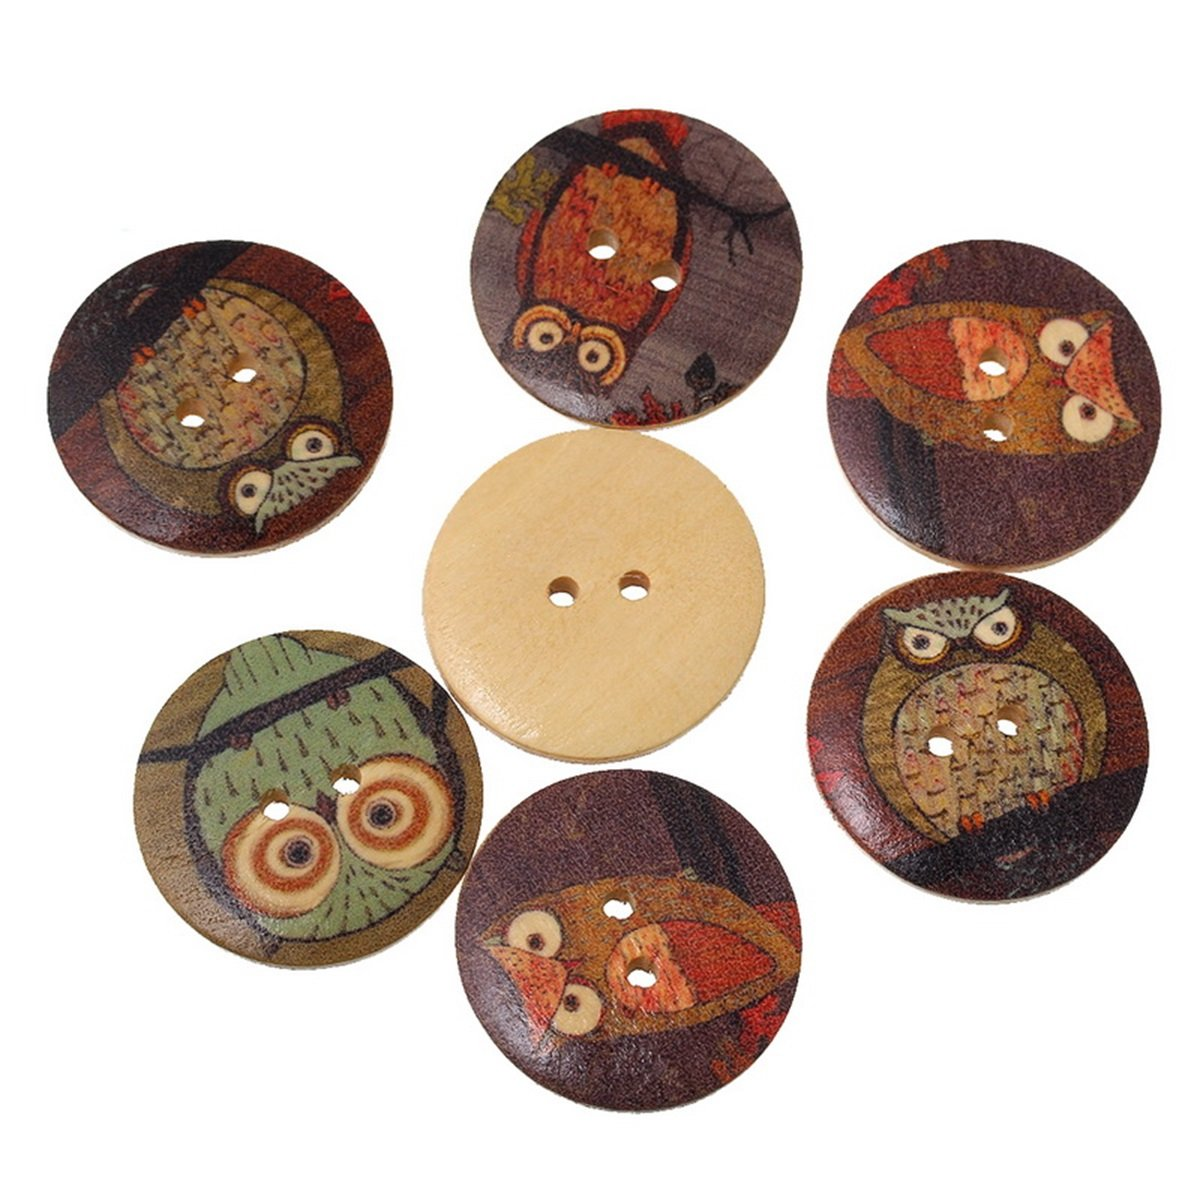 HooAMI Mixed Colours Owls Wooden Buttons for Sewing and Crafting, Pack of 50pcs ,3cm Terrific-Young LJ0AA01AZ